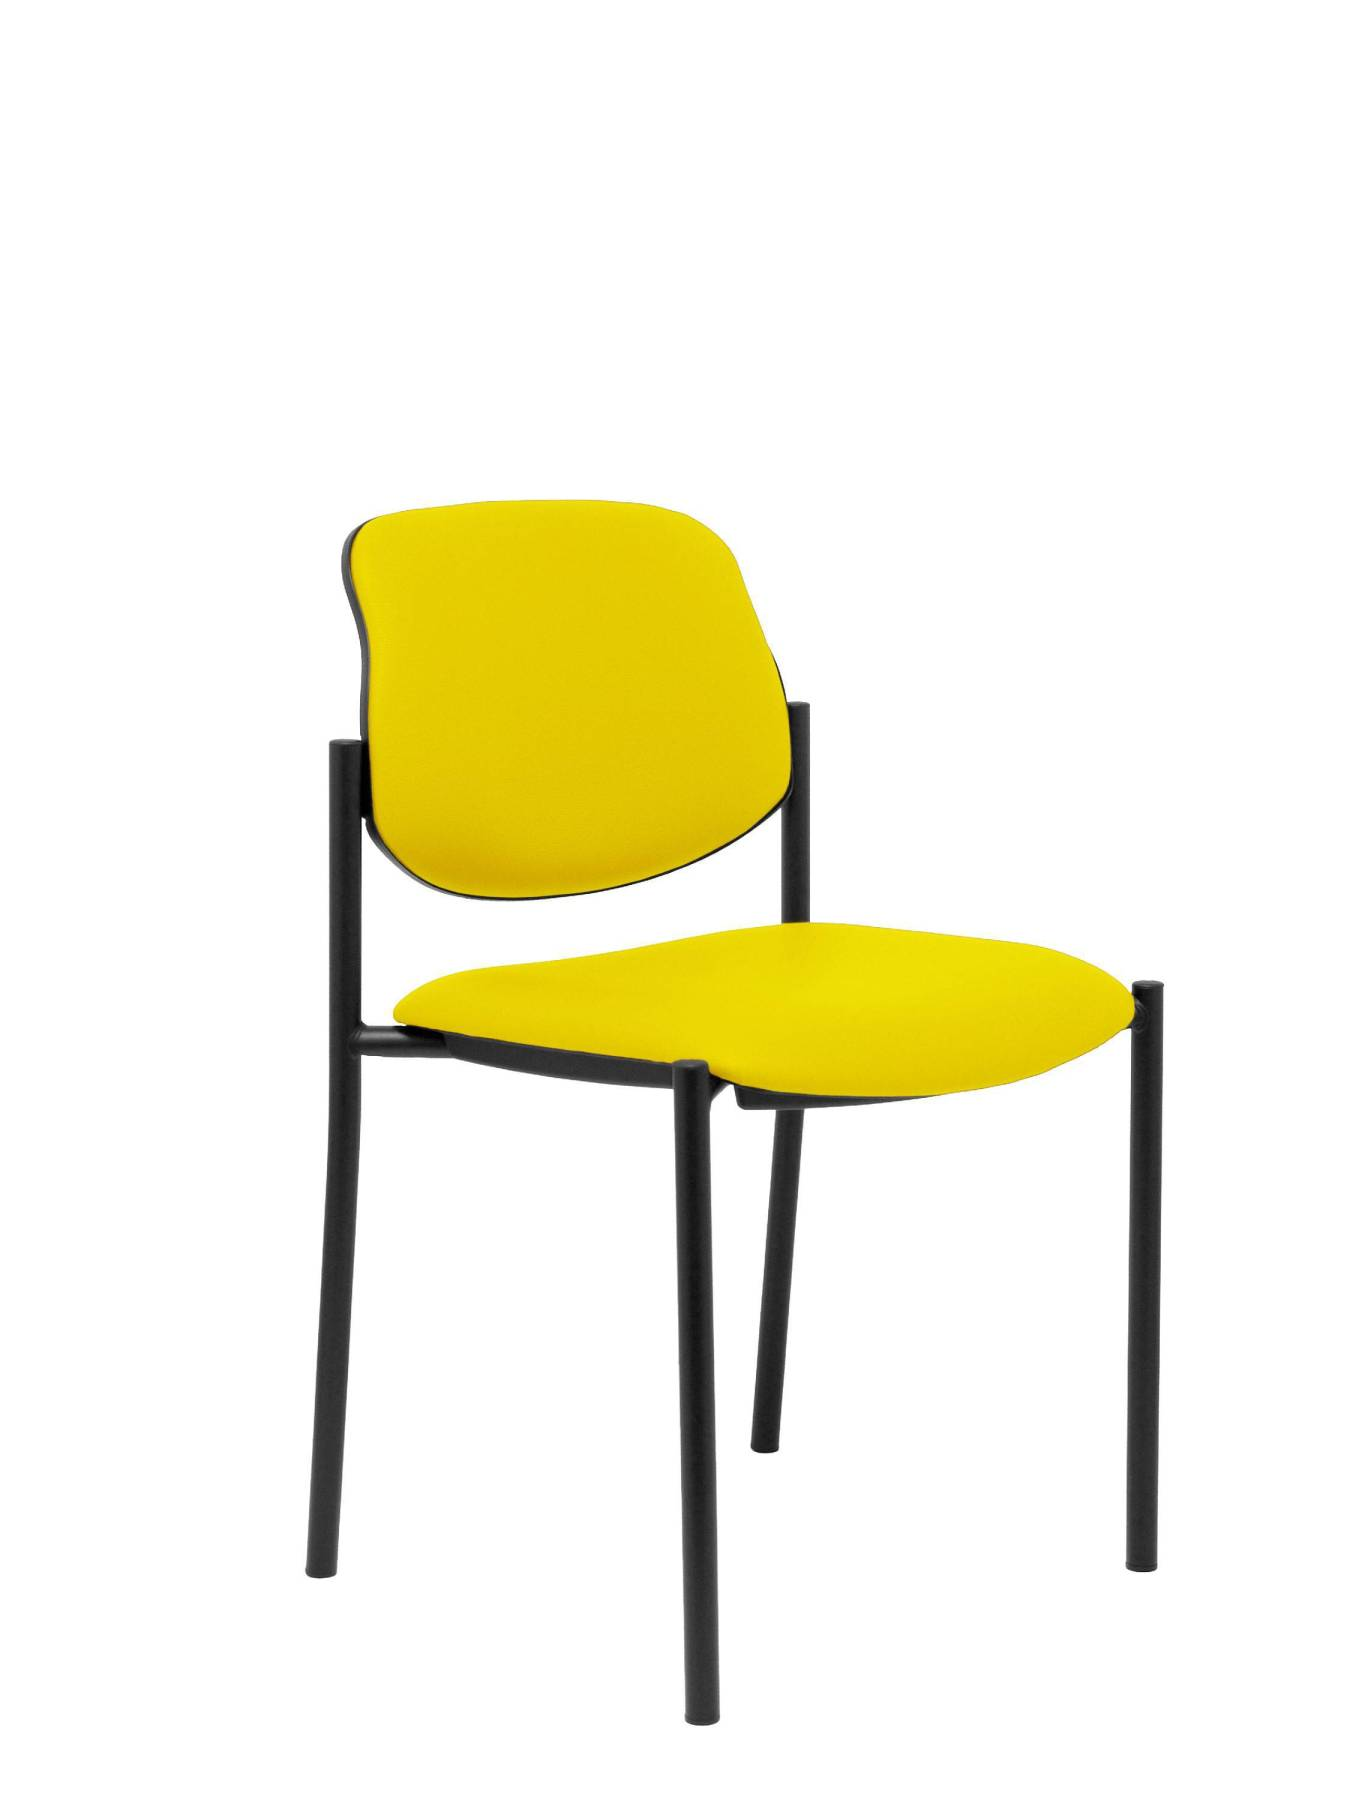 Visitor Chair 4's Topsy And Estructrua Negro-up Seat And Backstop Upholstered In Tissue Similpiel Color Yellow TAPHOLE